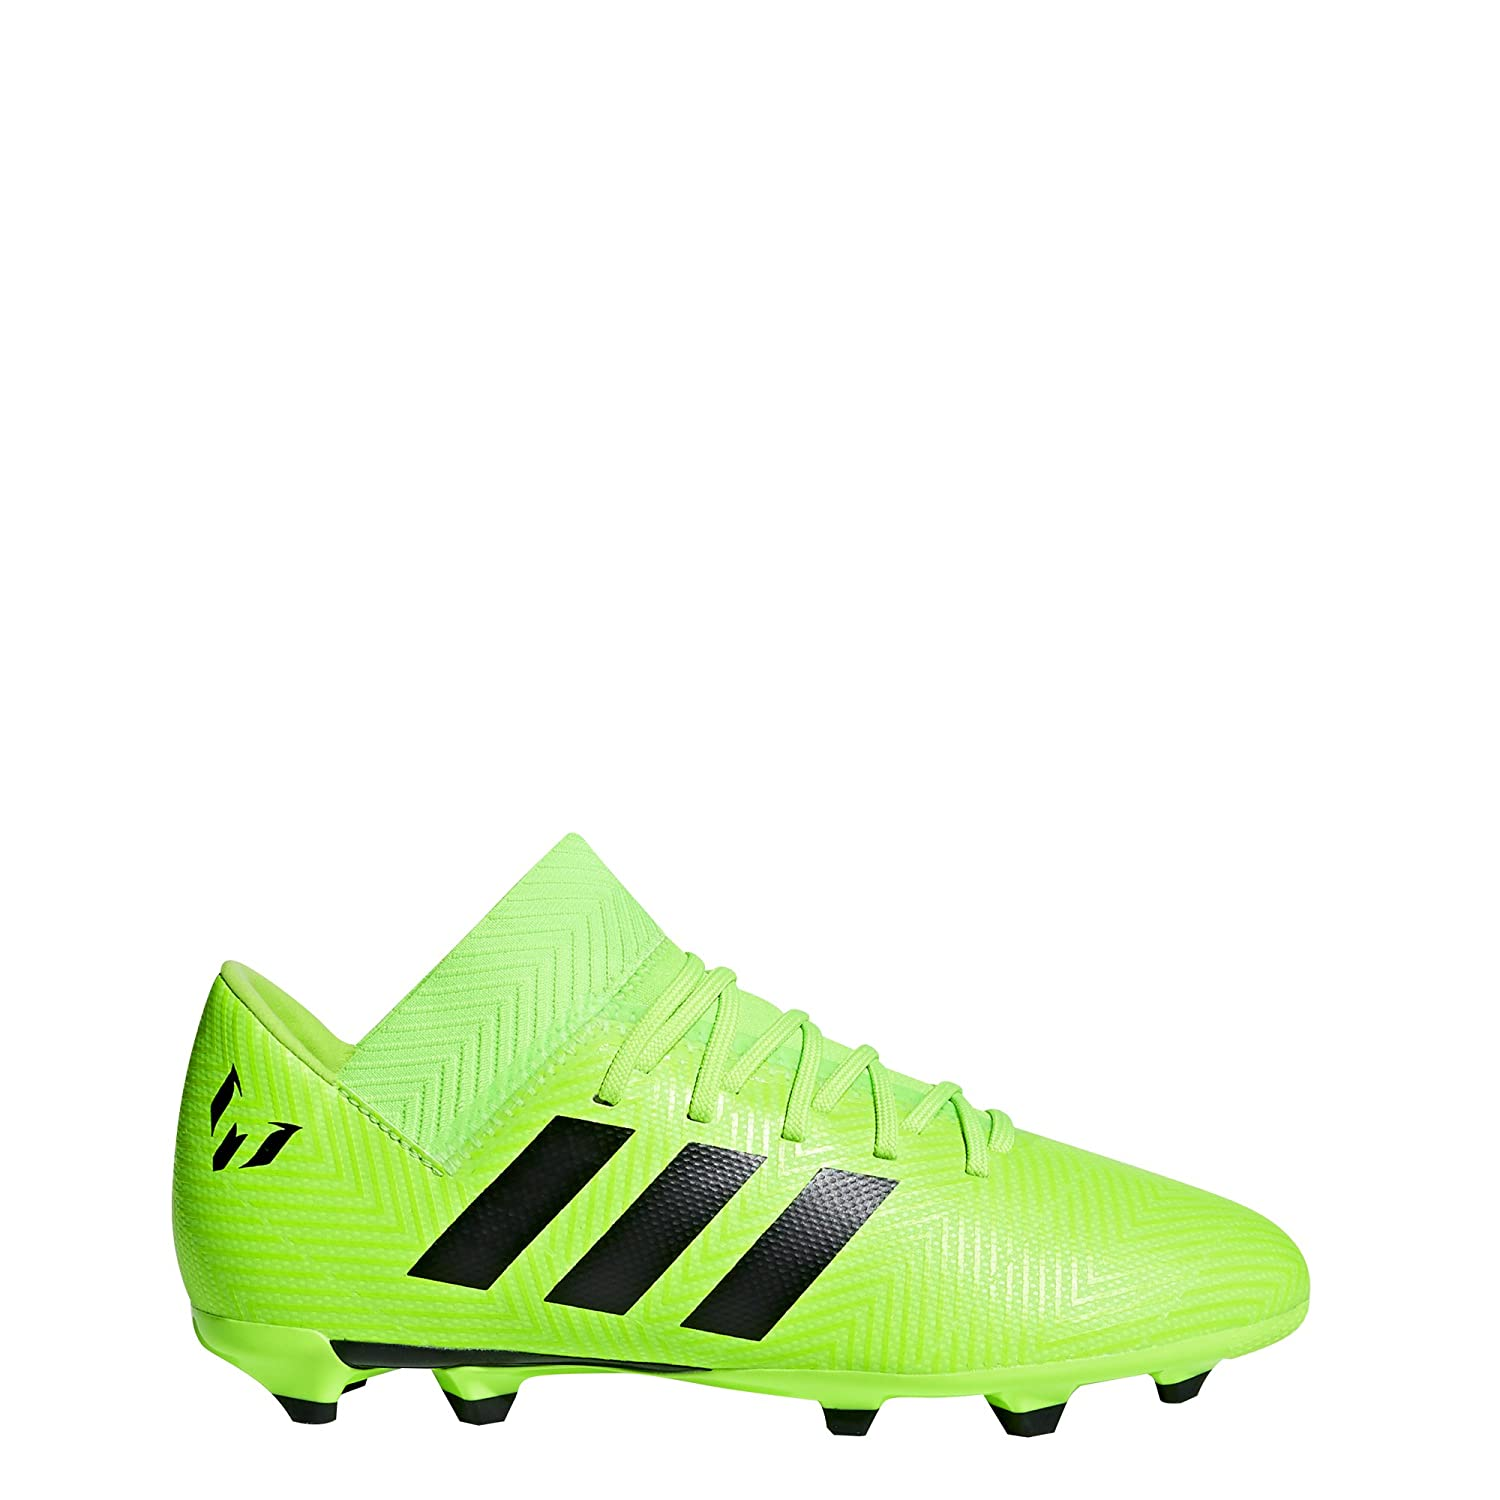 87611df7f124 adidas Boys  NEMEZIZ Messi 18.3 Firm Ground Soccer Shoes  Amazon.ca  Shoes    Handbags